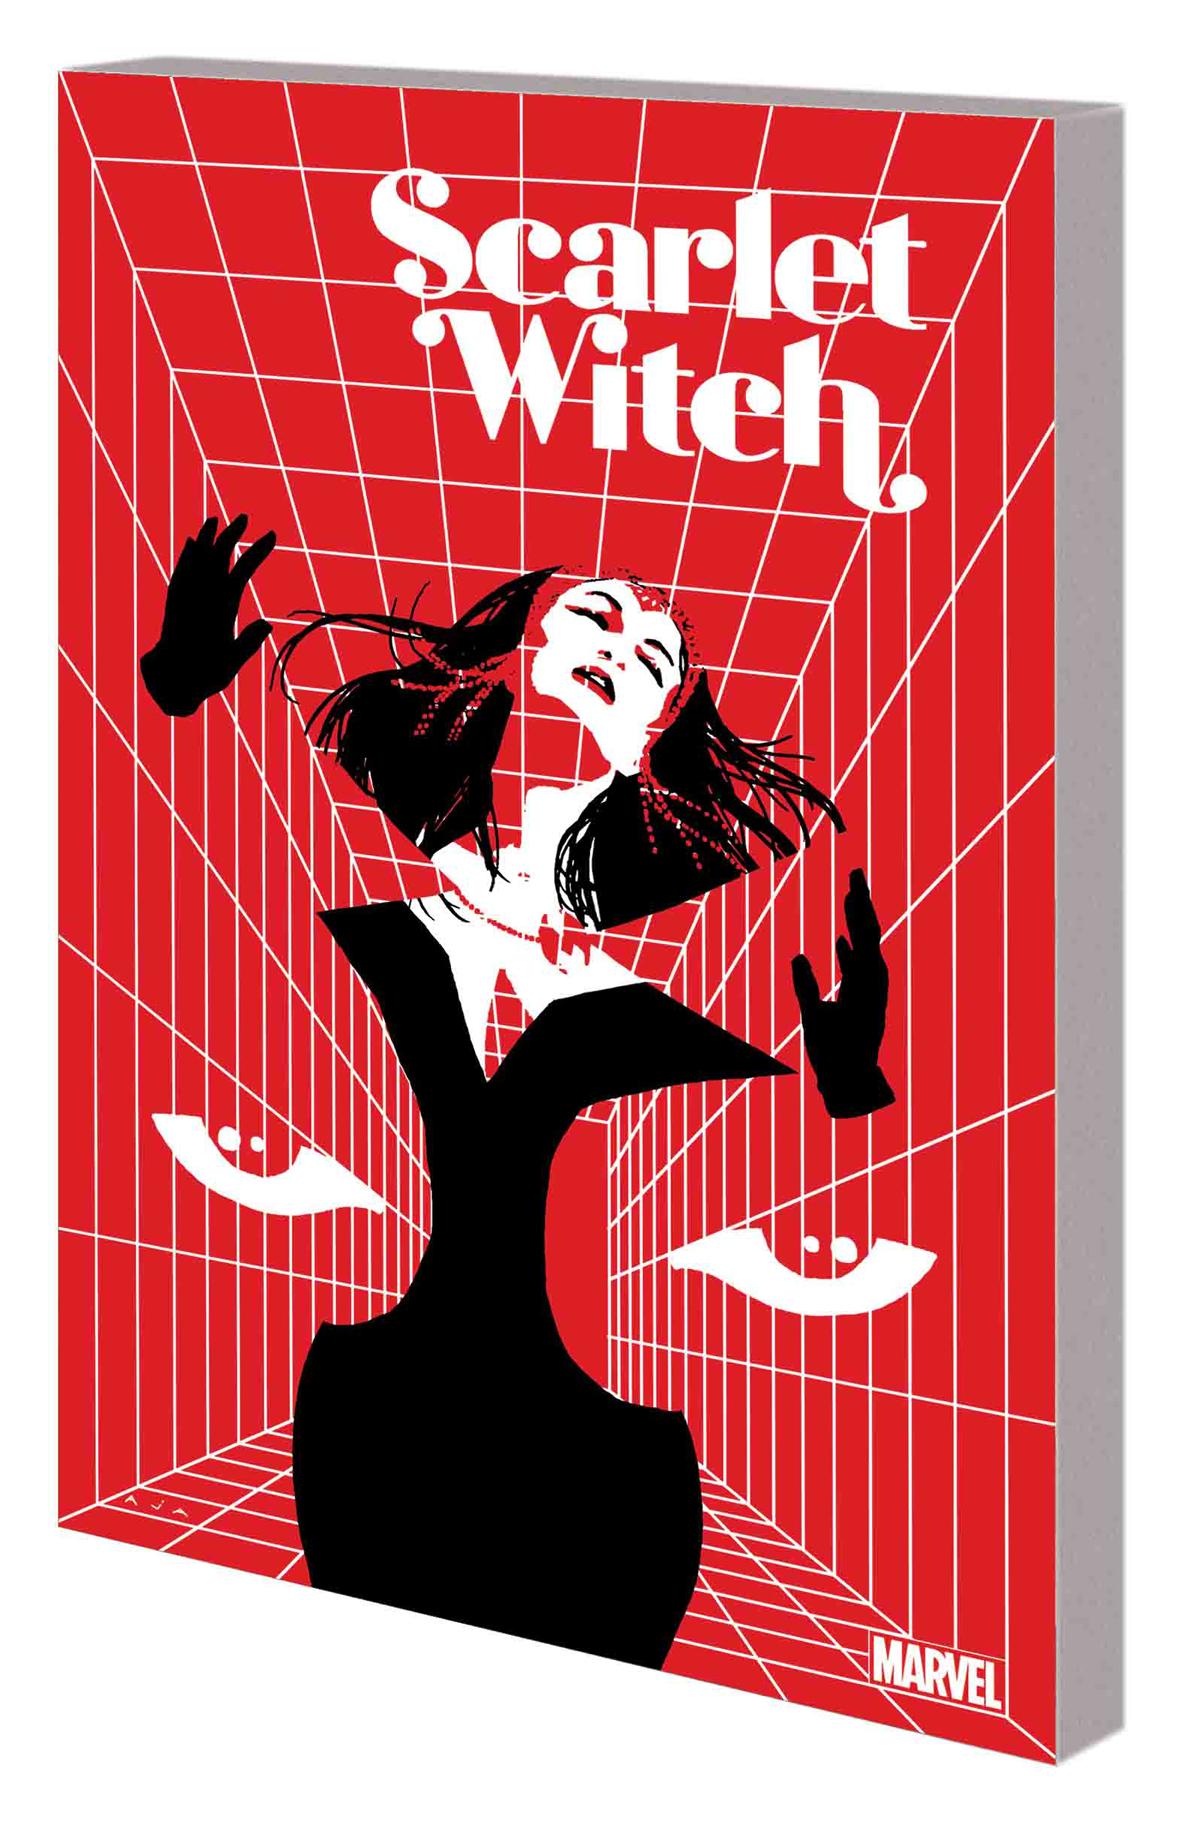 SCARLET WITCH TP VOL 03 FINAL HEX